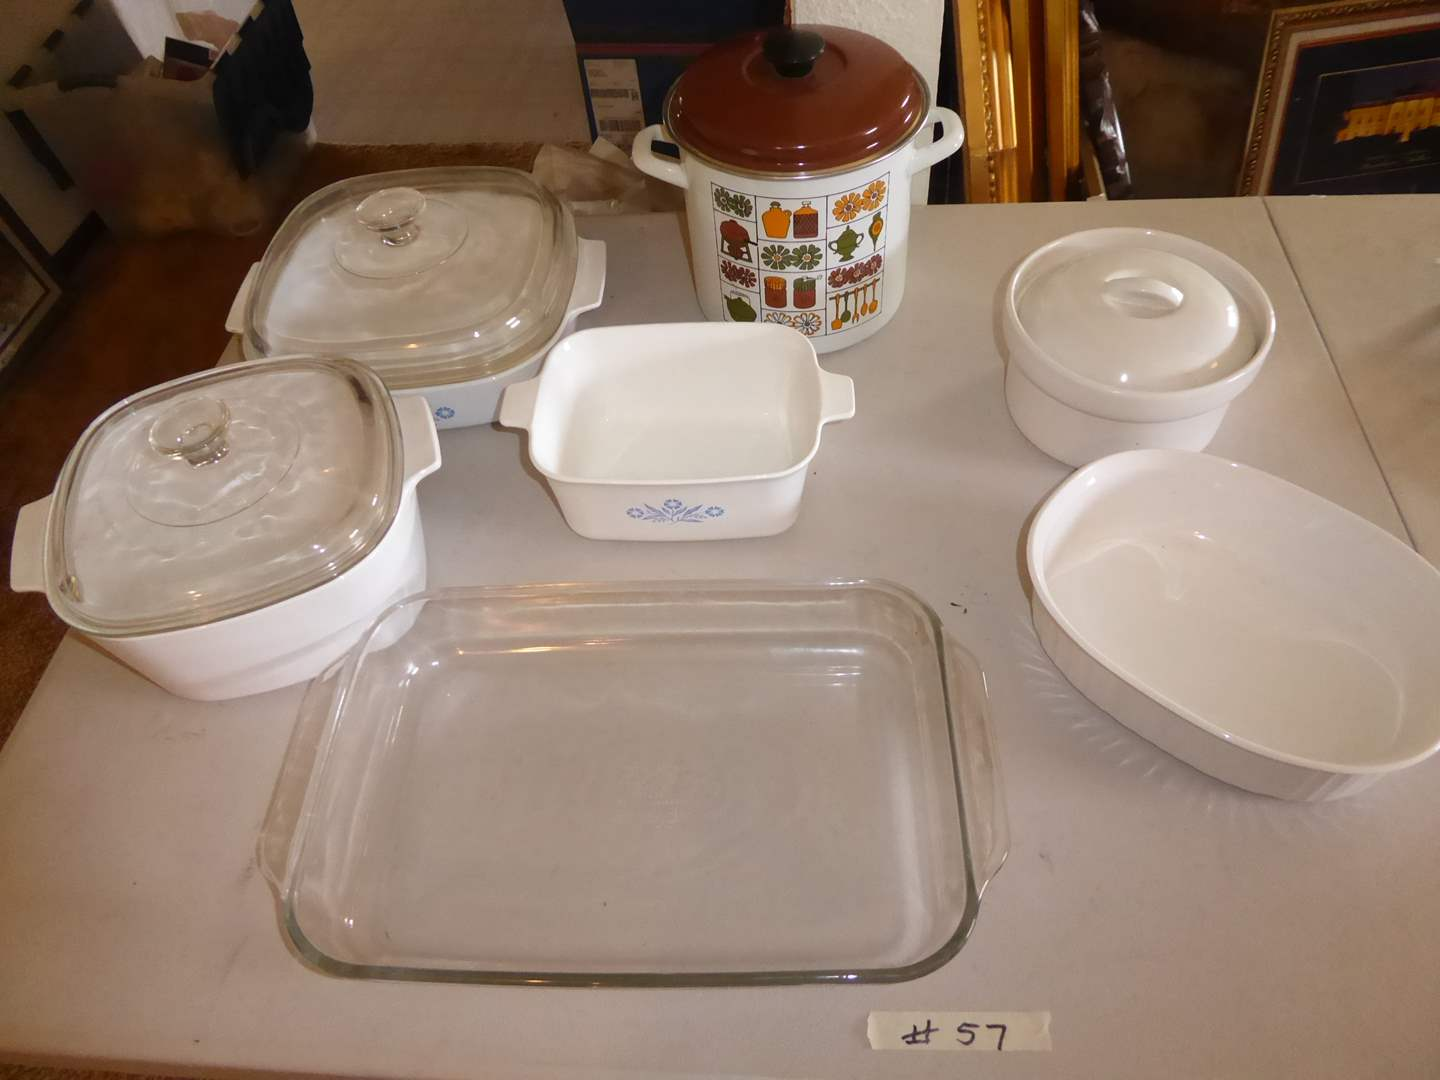 Lot # 57 - Adorable Multi-Purpose Cooker & Corning-ware Baking Dishes   (main image)